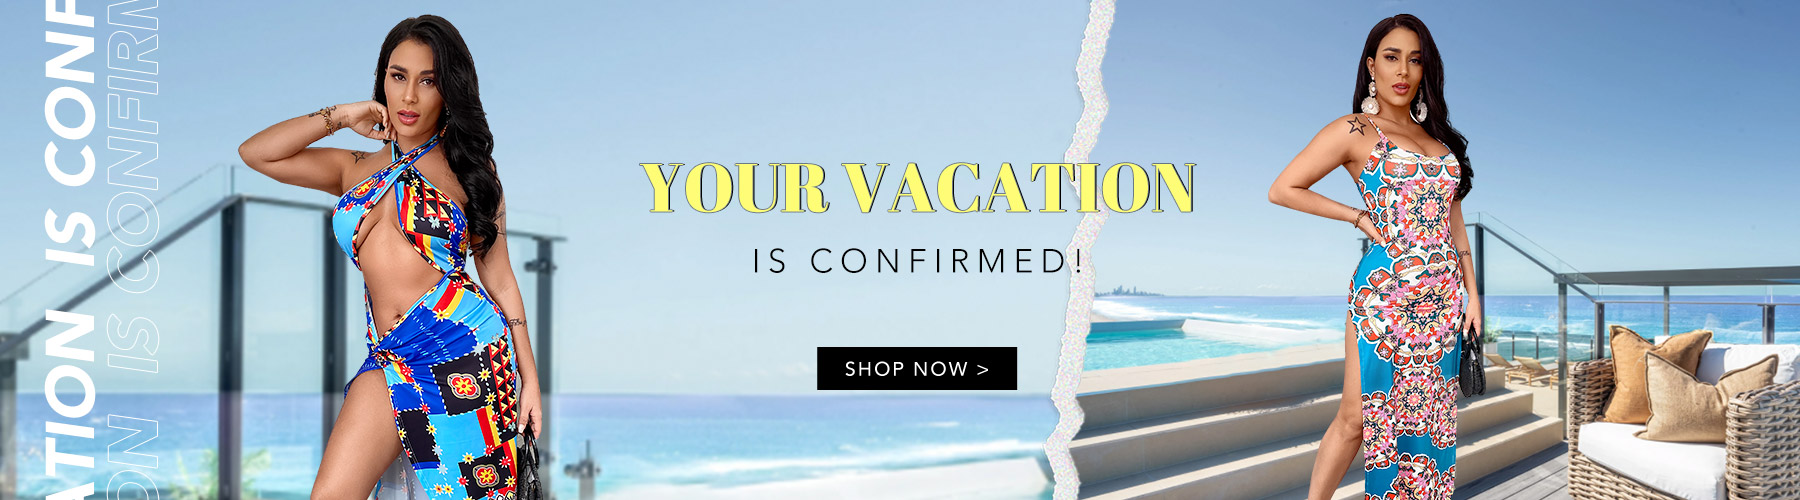 Your Vacation Is Confirmed!